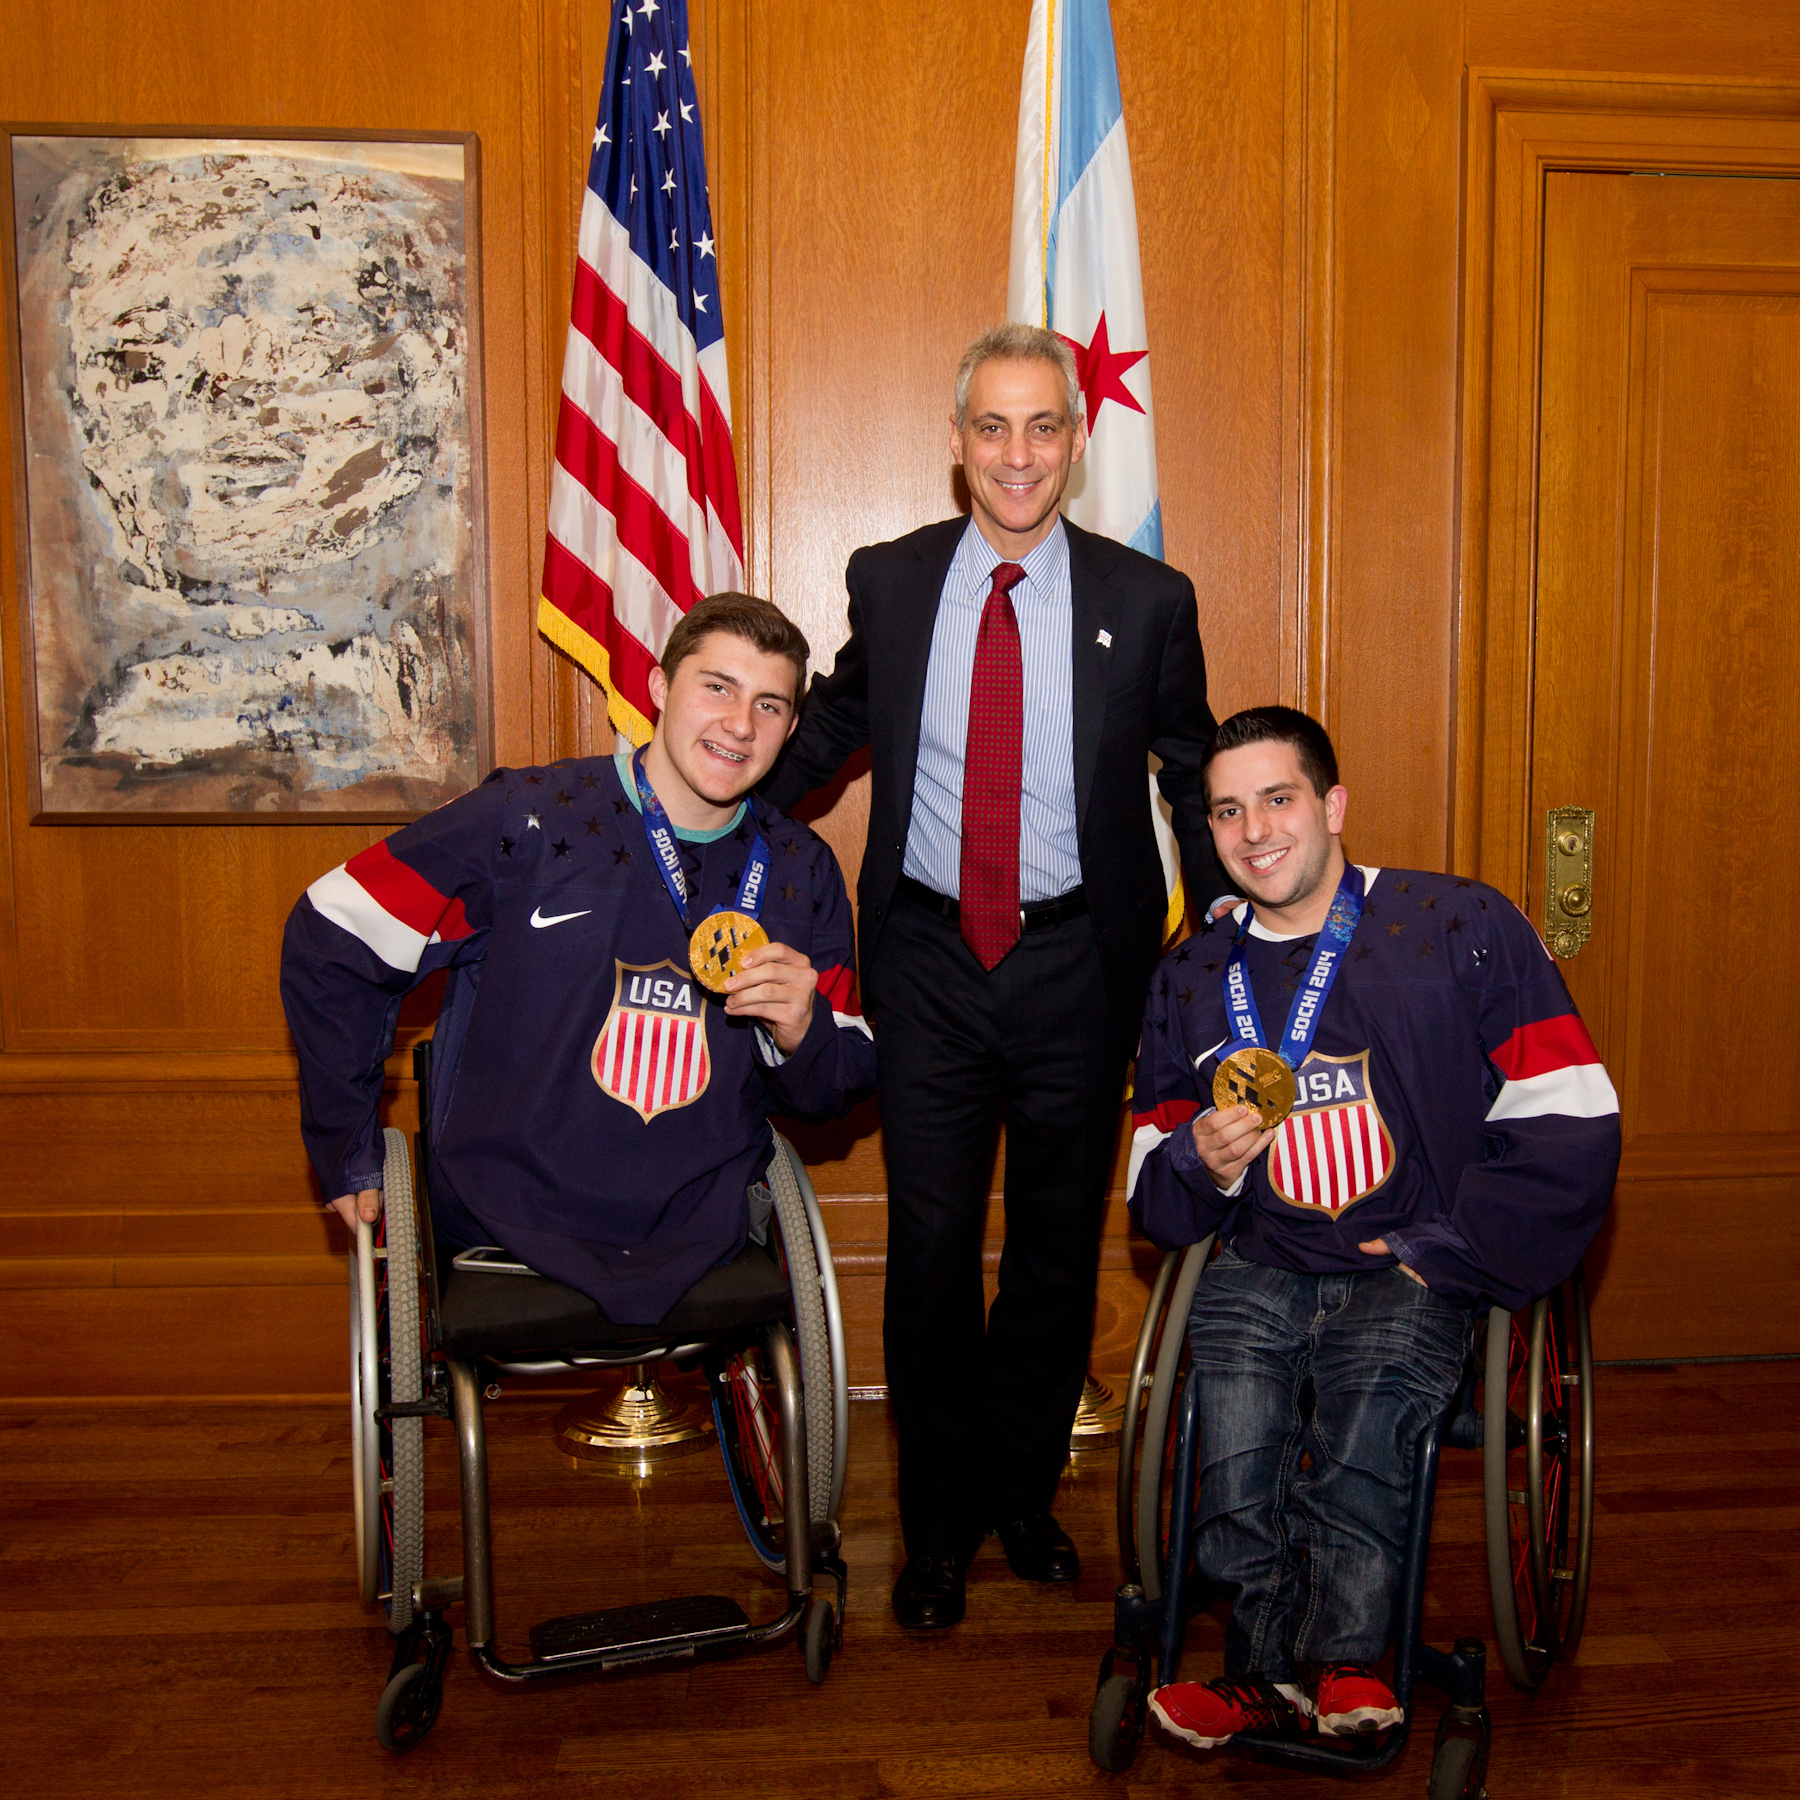 Mayor Rahm Emanuel meets with Paralympians Brody Roybal and Kevin Mckee